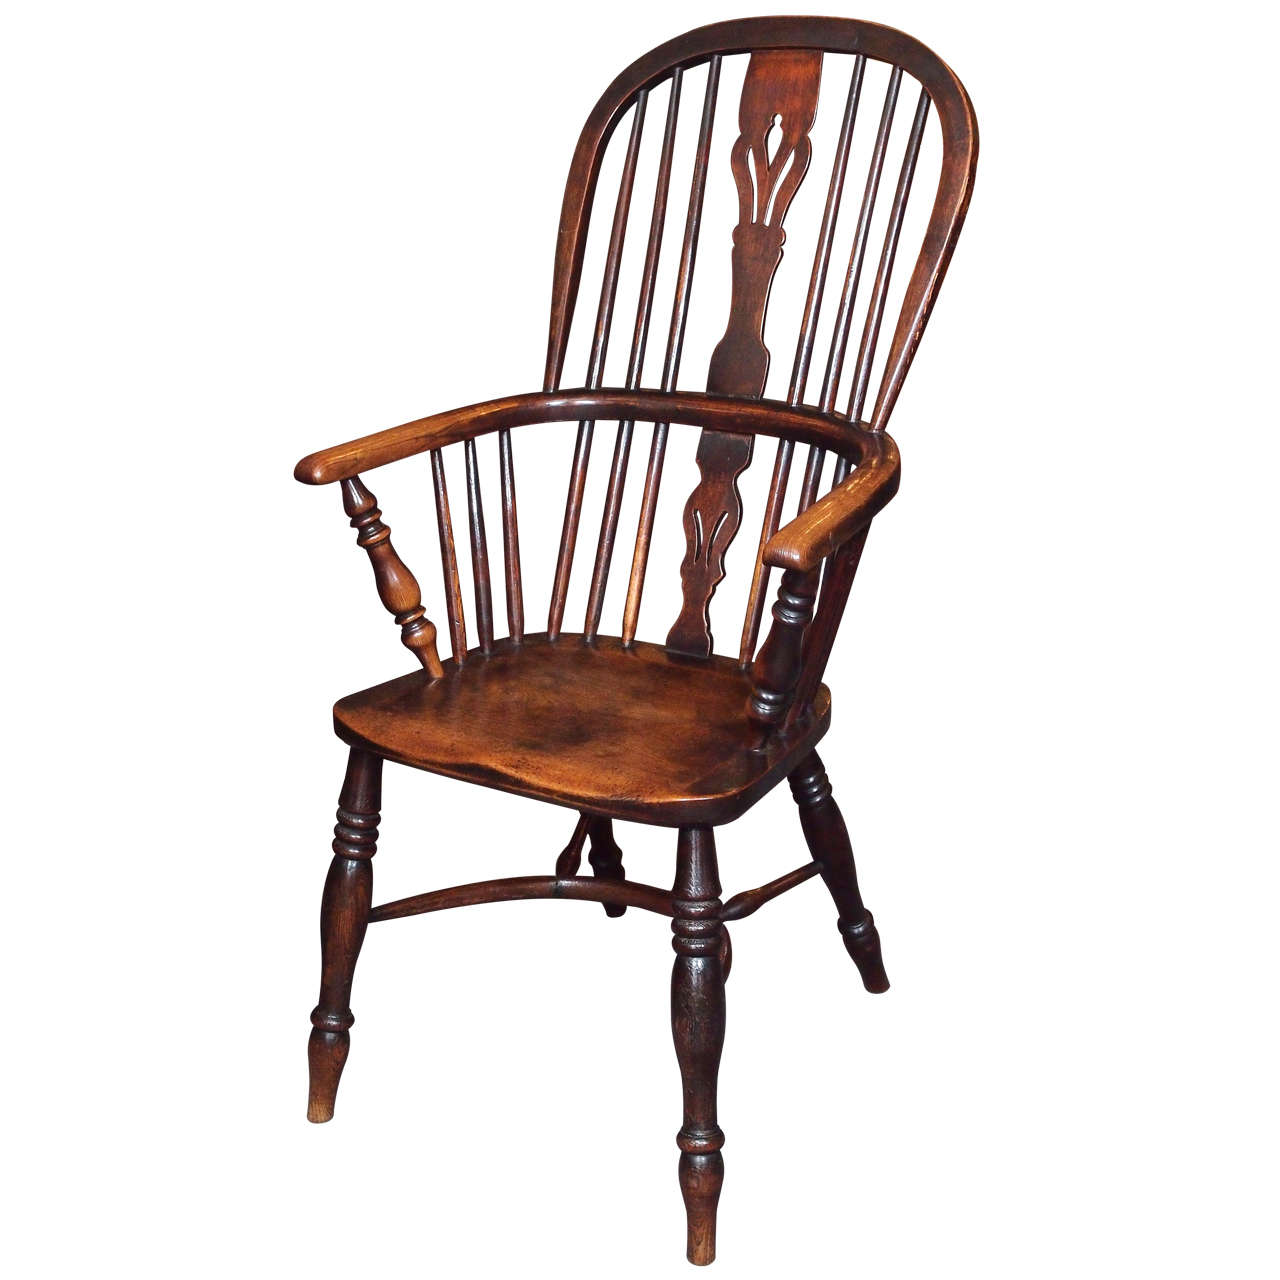 Antique English elm and ash Windsor chair with crinoline stretcher. For Sale - Antique English Elm And Ash Windsor Chair With Crinoline Stretcher